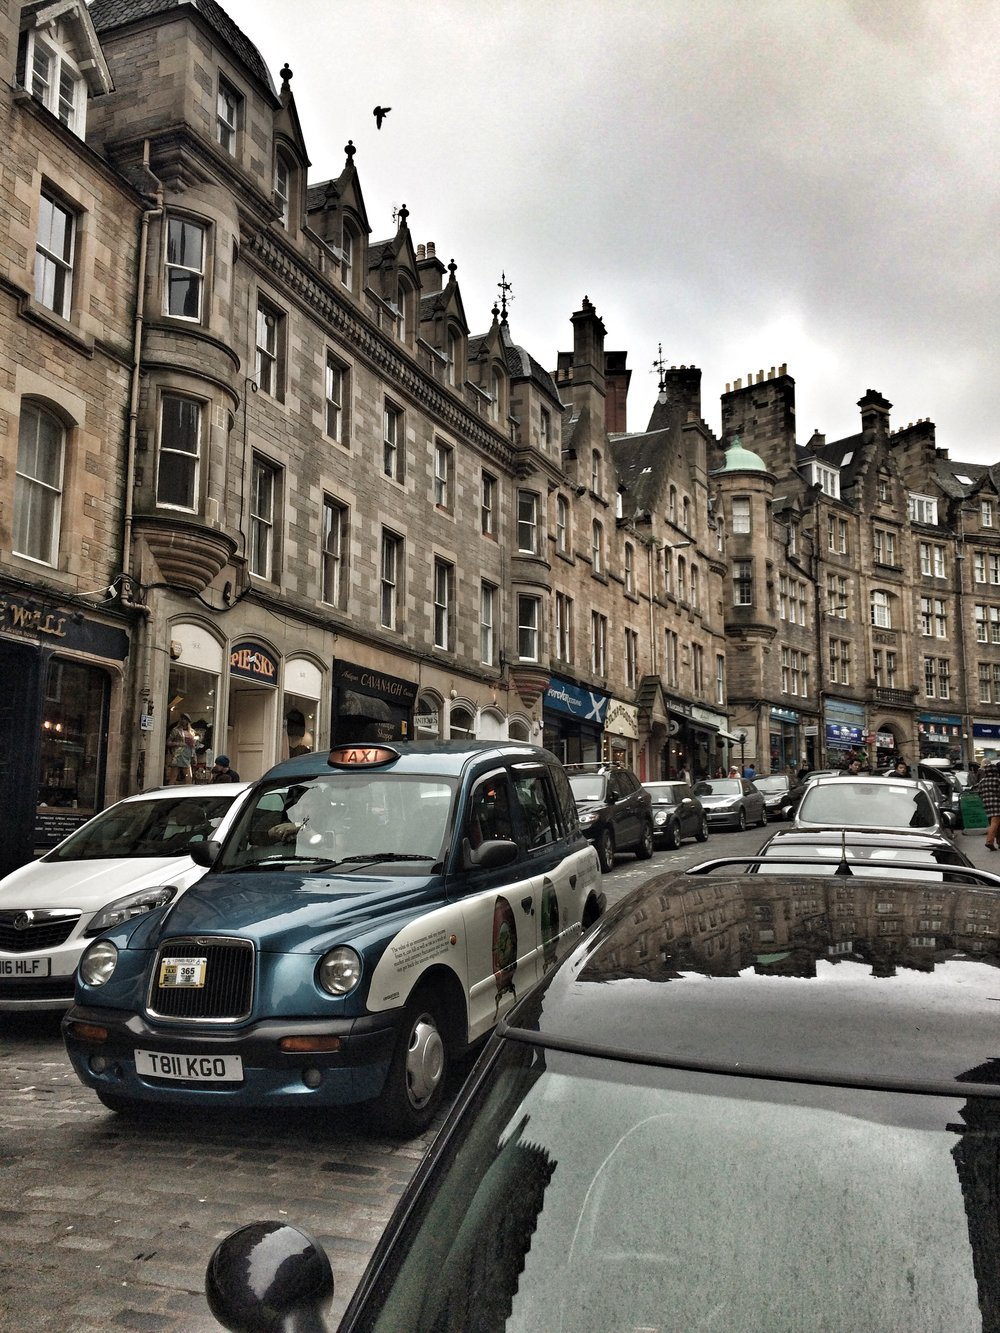 The delightful shops and cobblestones of Cockburn St